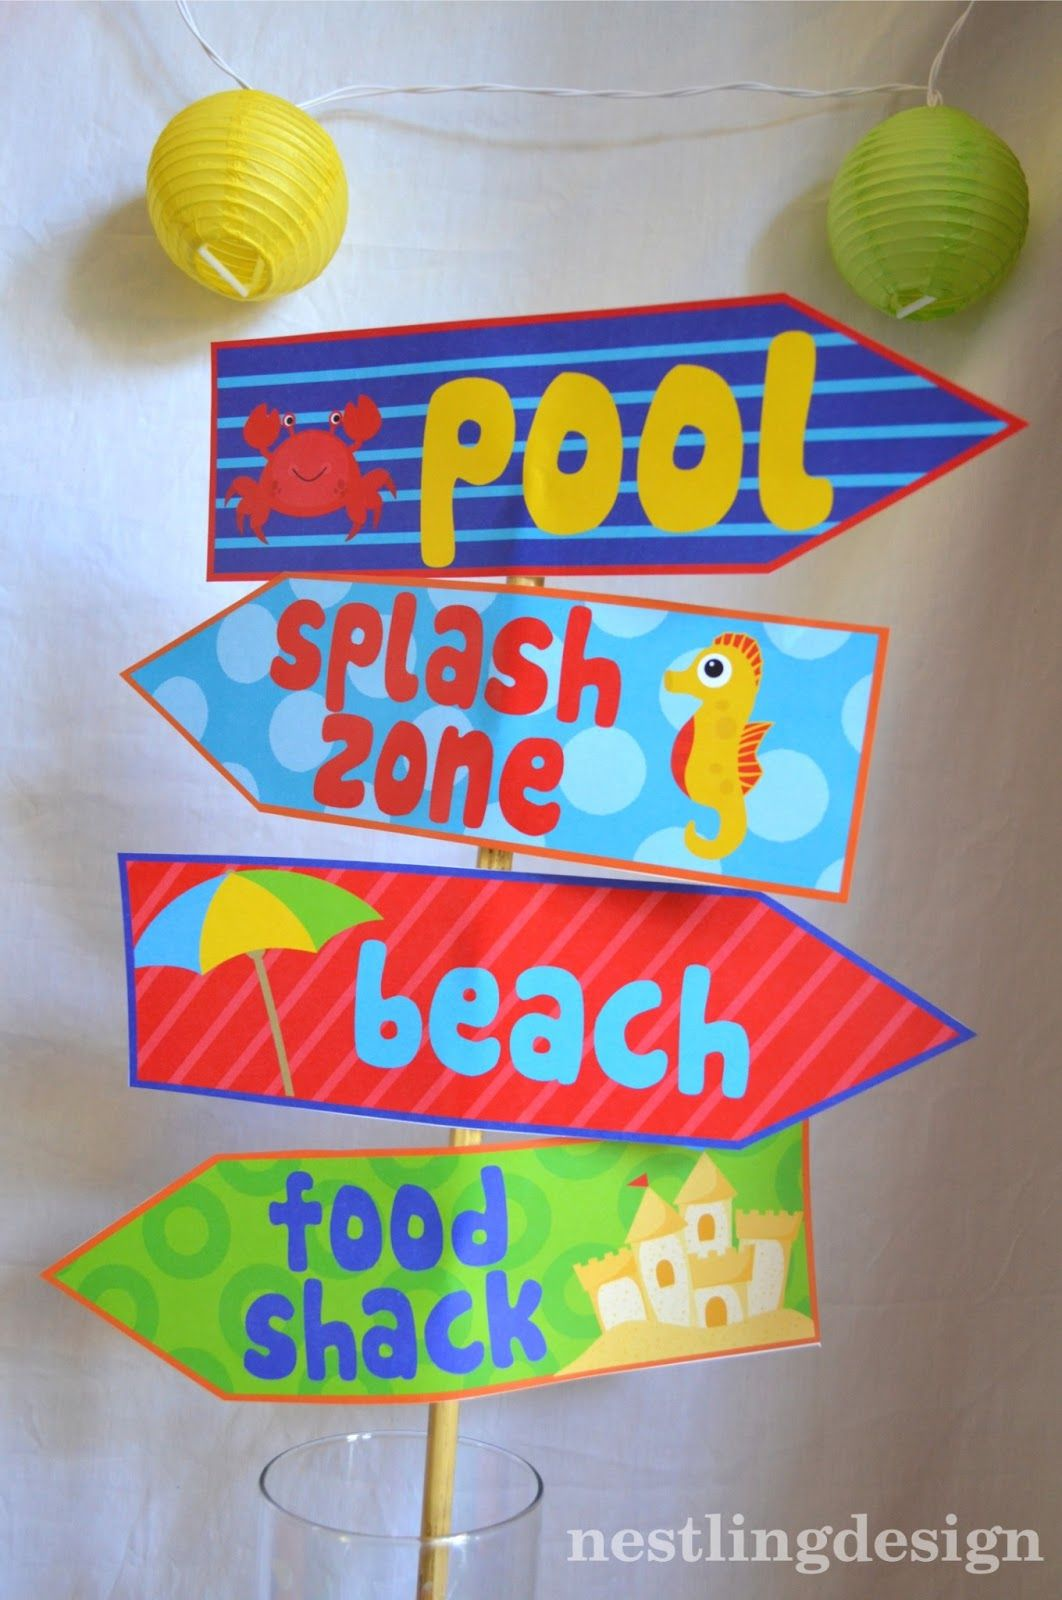 Nestling: Beach Ball Pool Party Reveal! {New to the Shop} | Iyanna ...